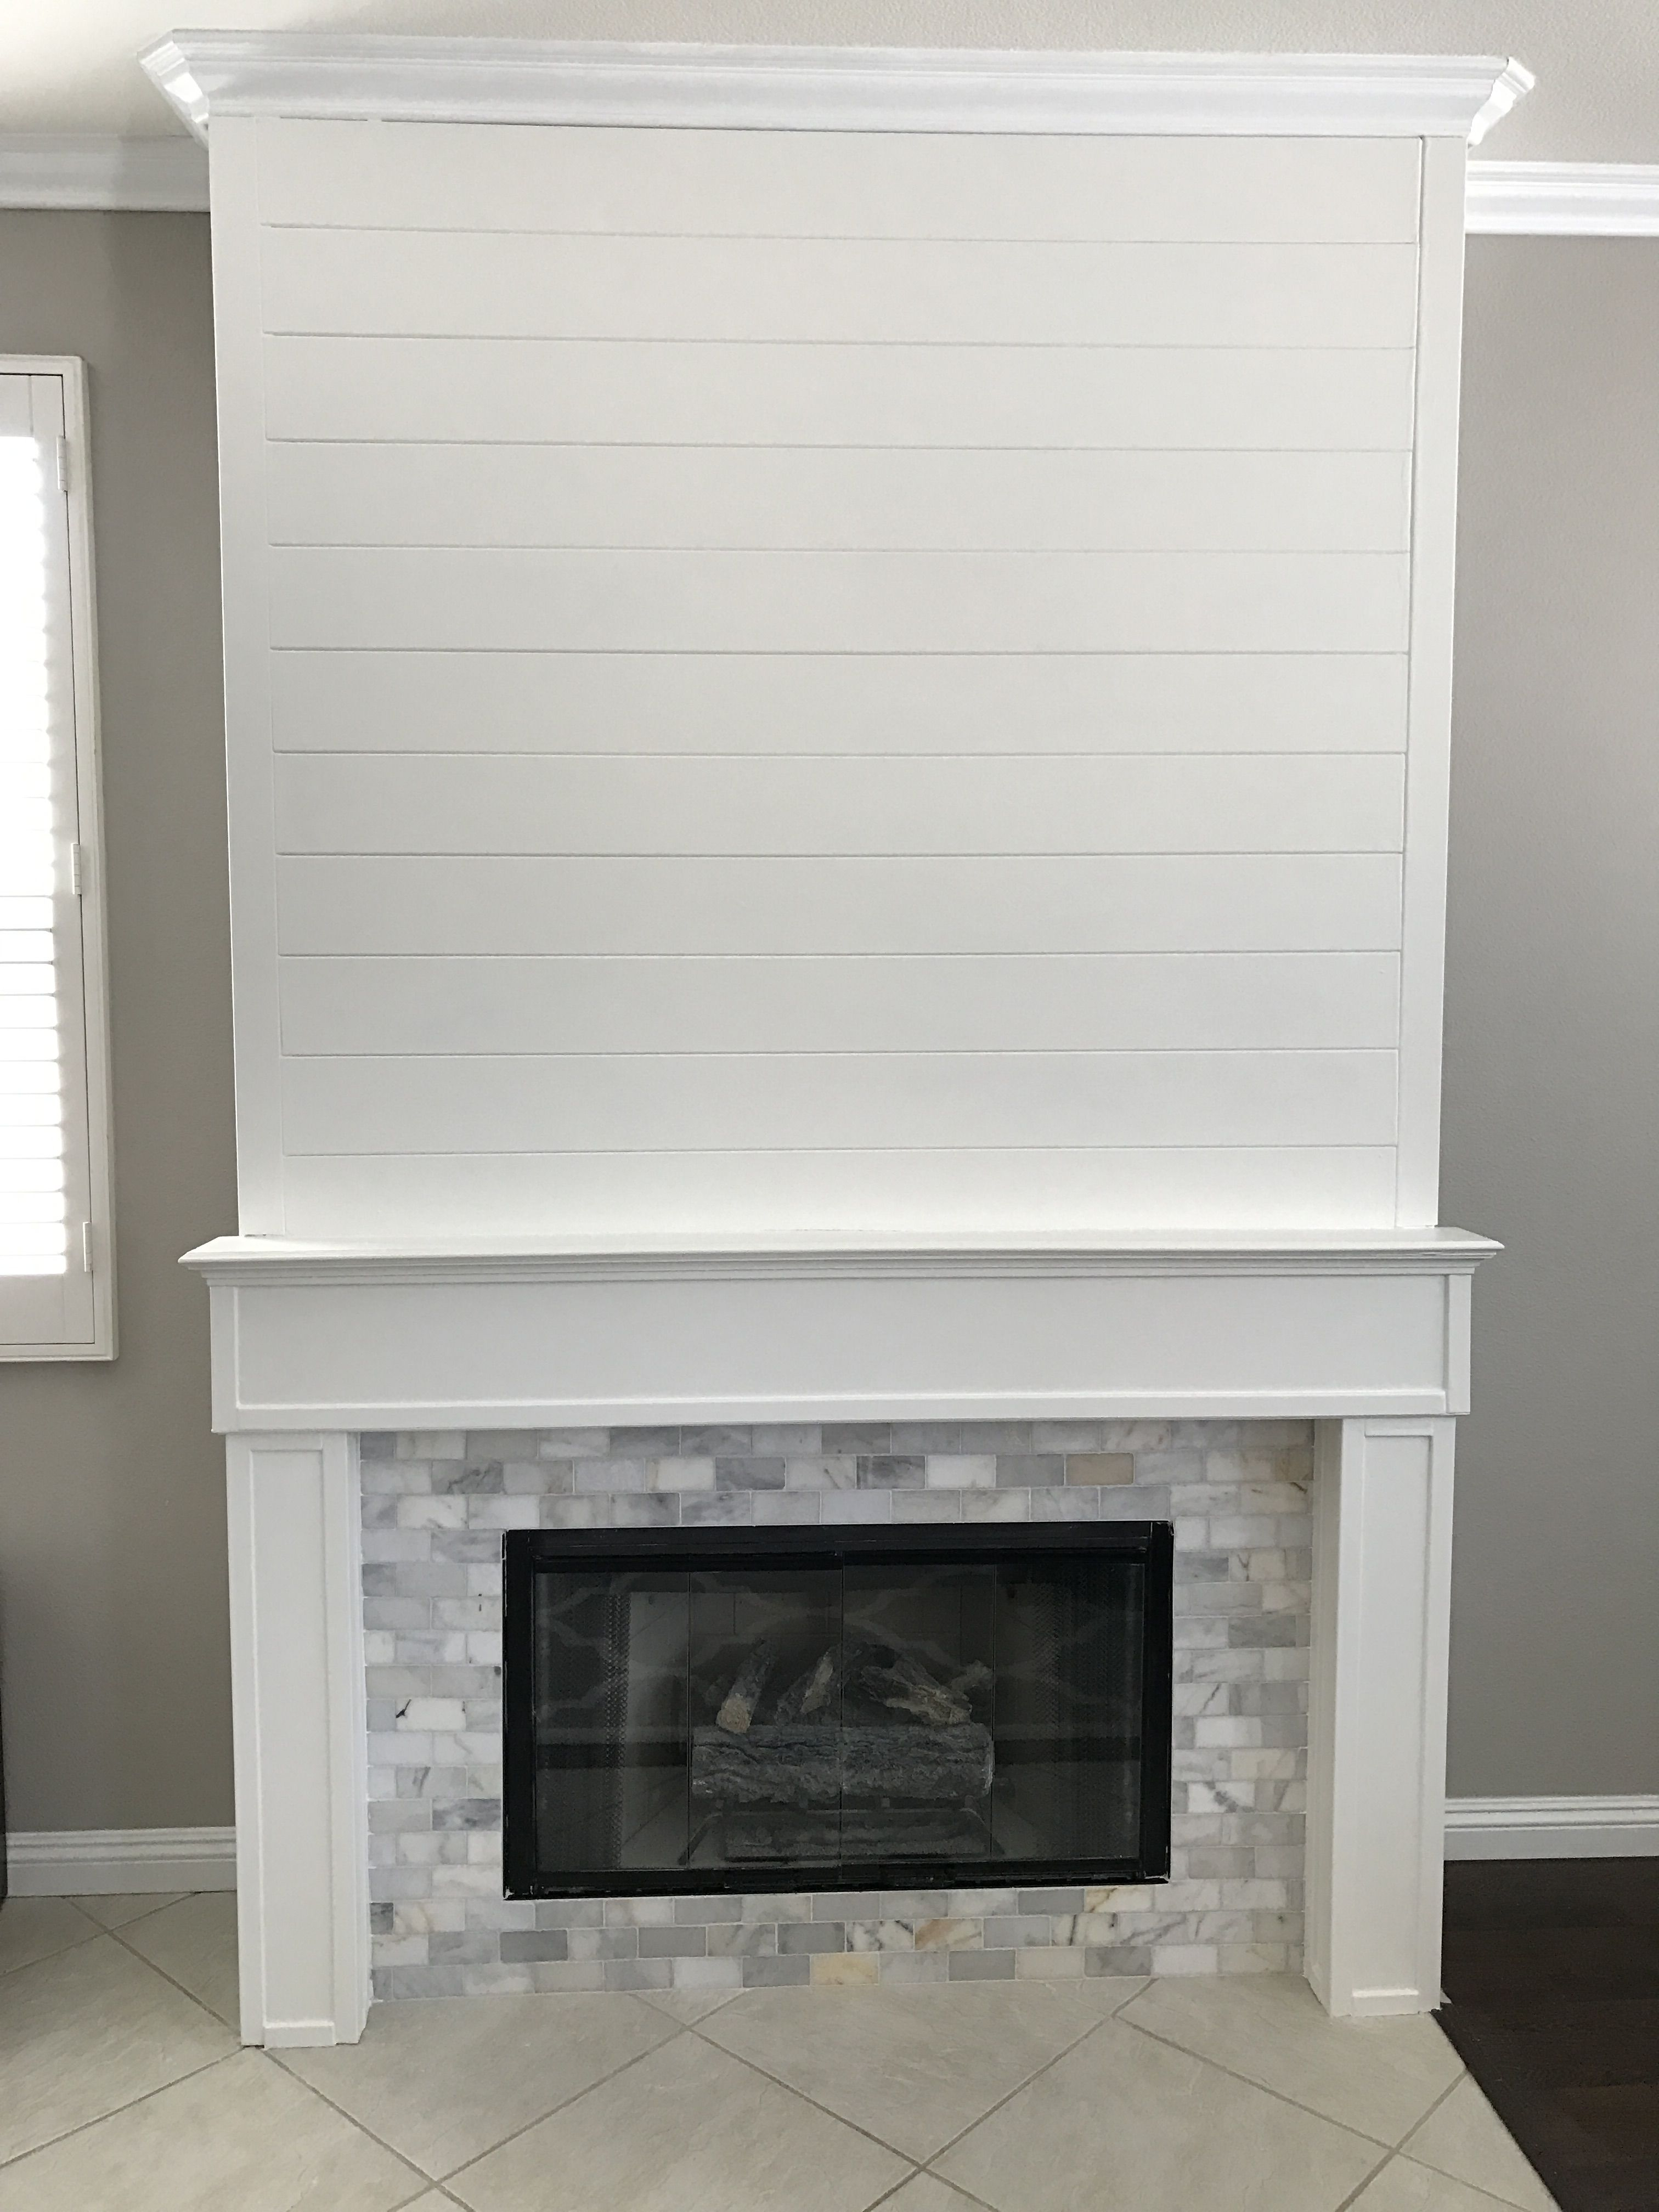 mantels fancy primitive around glass surround ideas sea pinterest tile designs makeover on round of fireplace